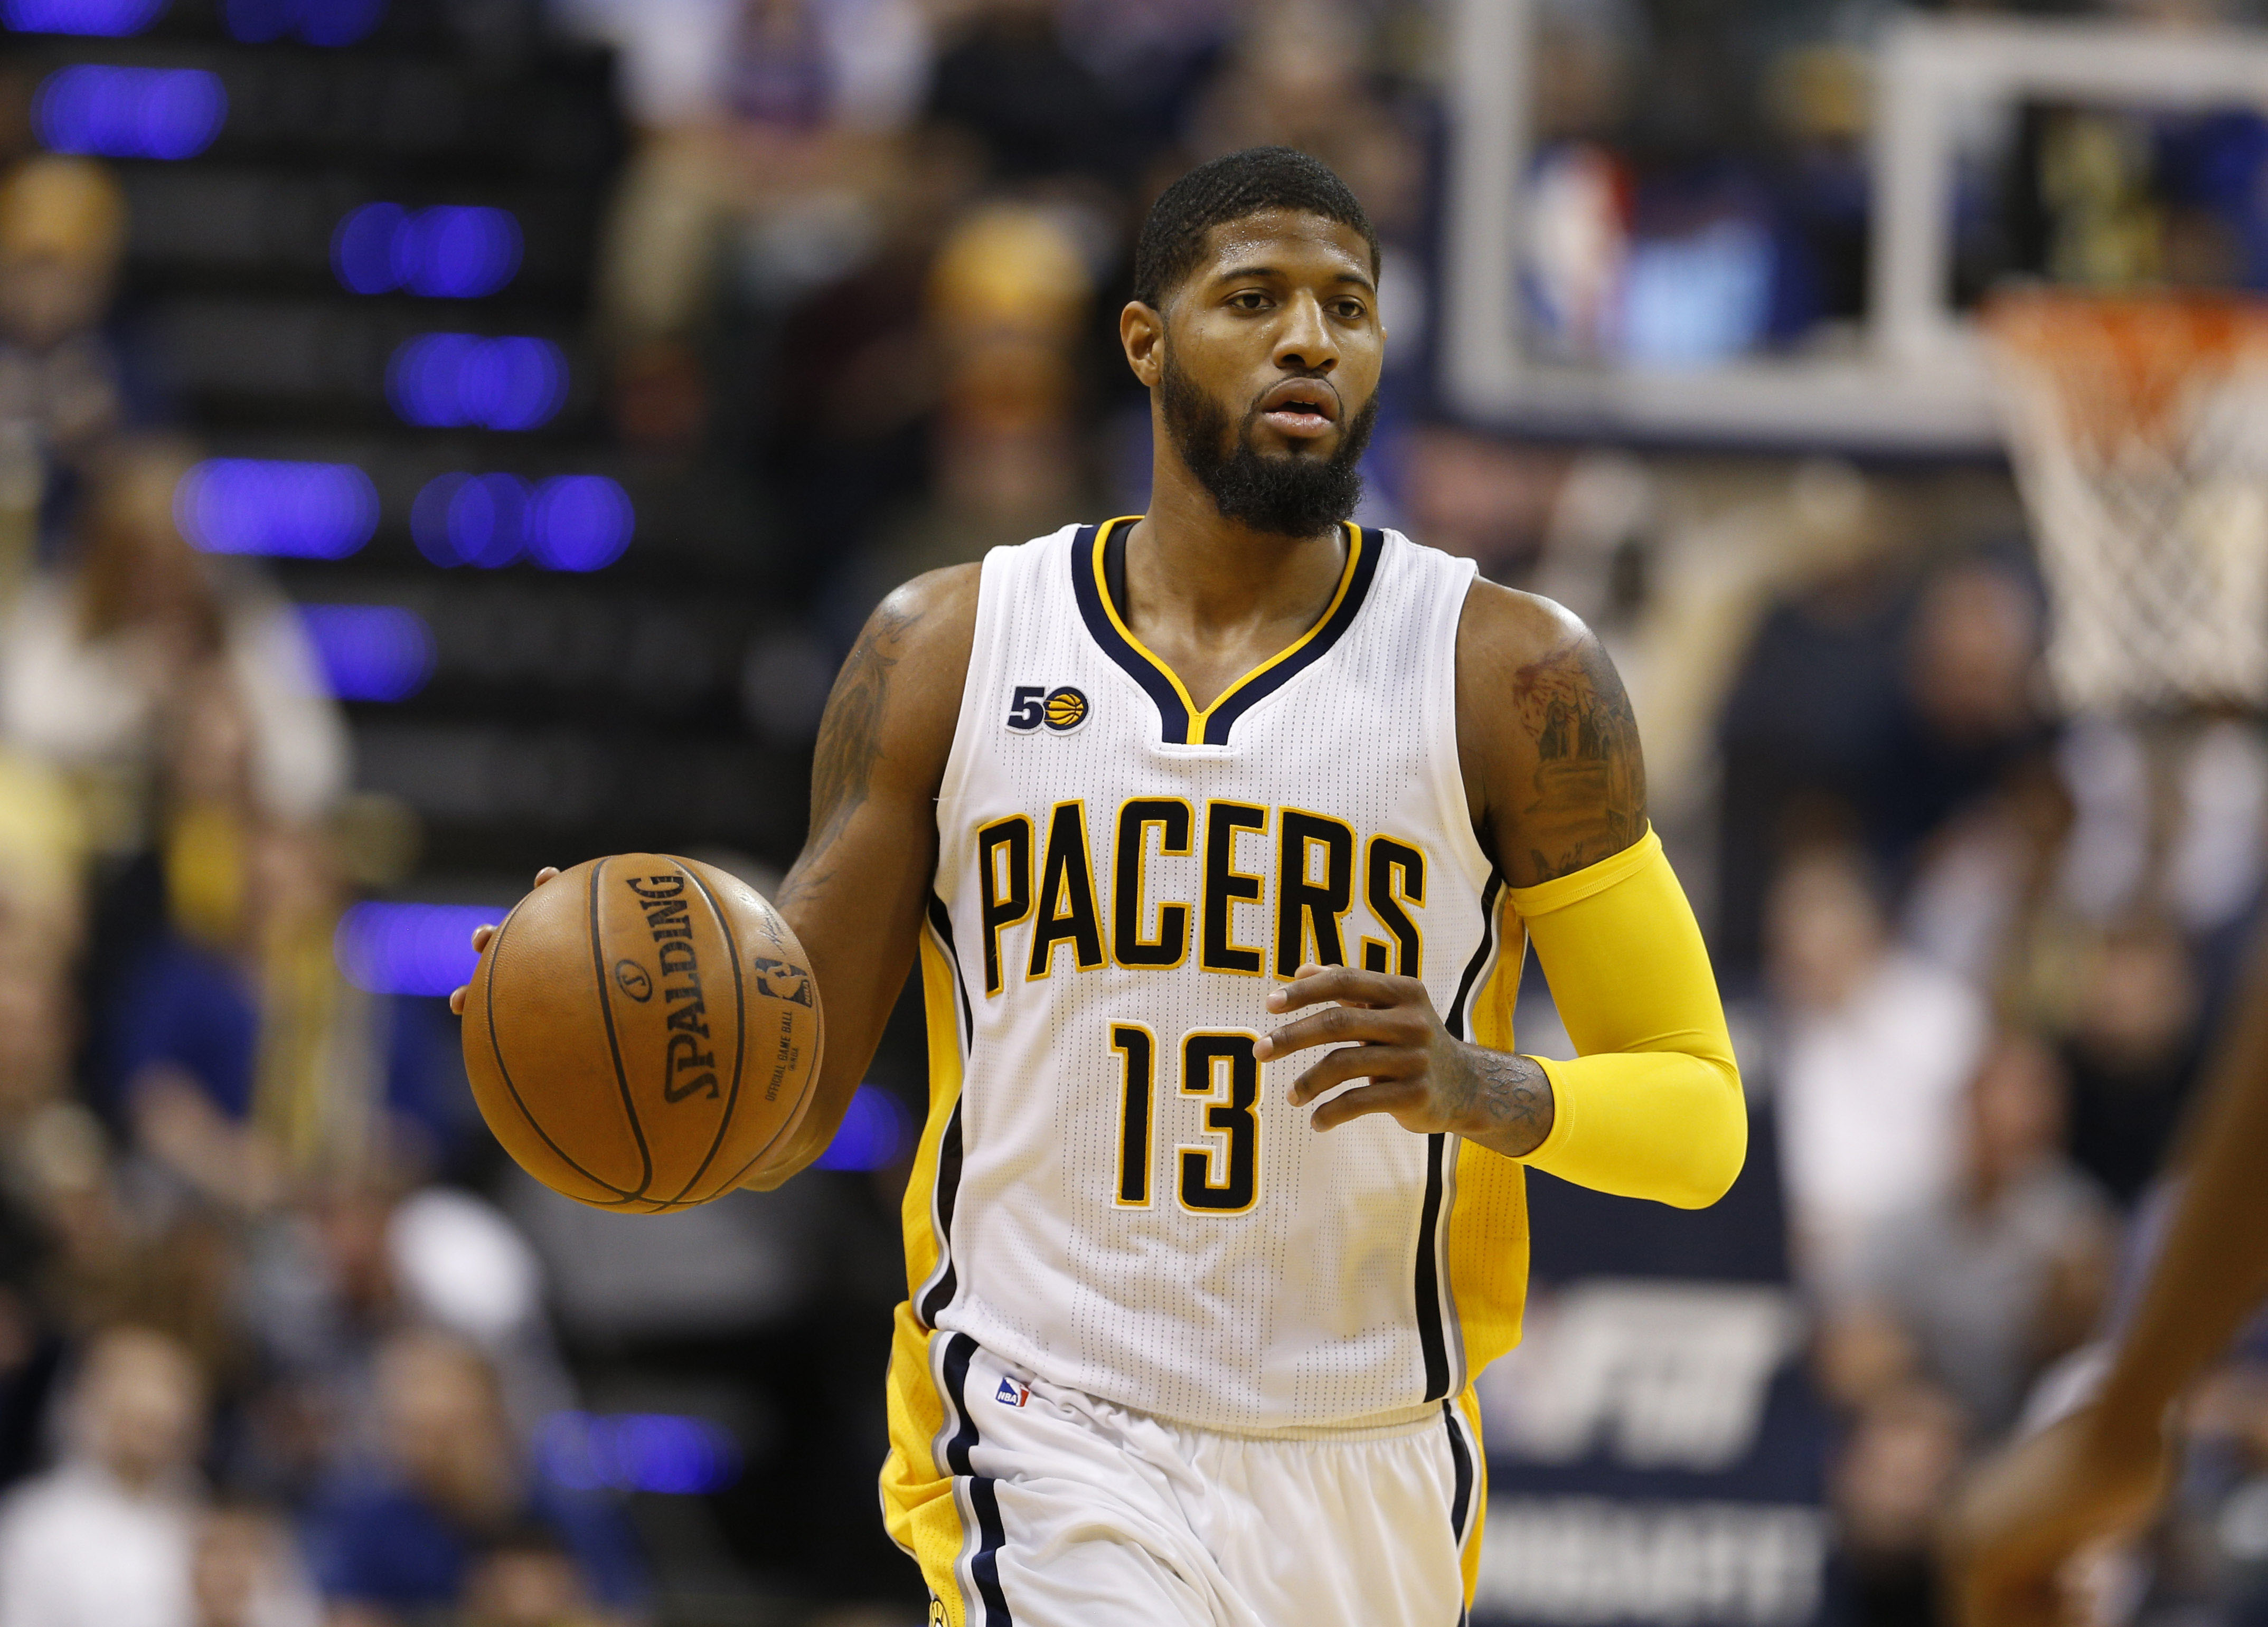 887c00a3eab Jan 23, 2017; Indianapolis, IN, USA; Indiana Pacers forward Paul George